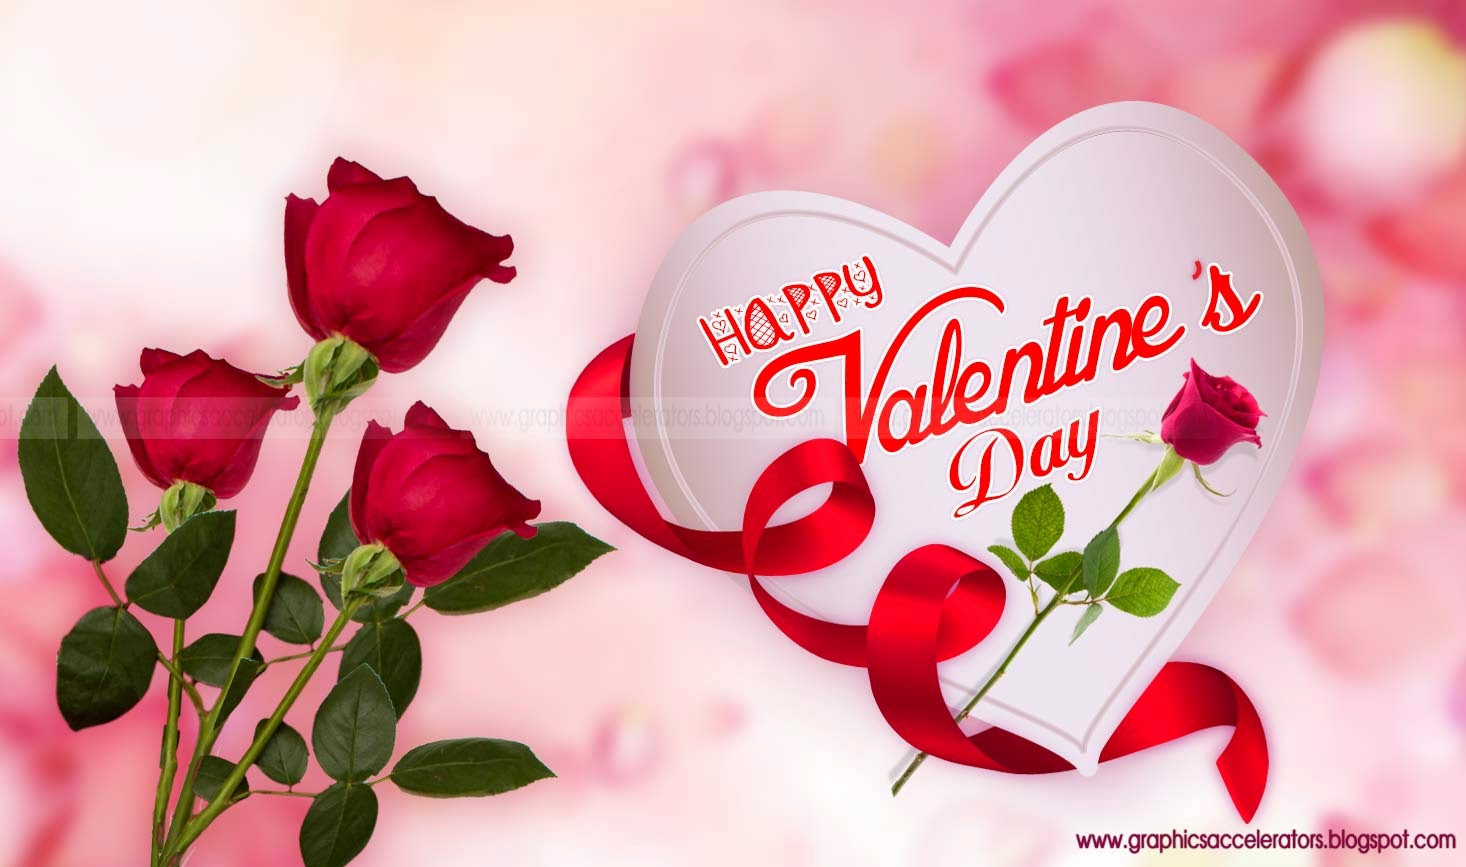 Valentines-Day-greeting-card-background-full-hd-07